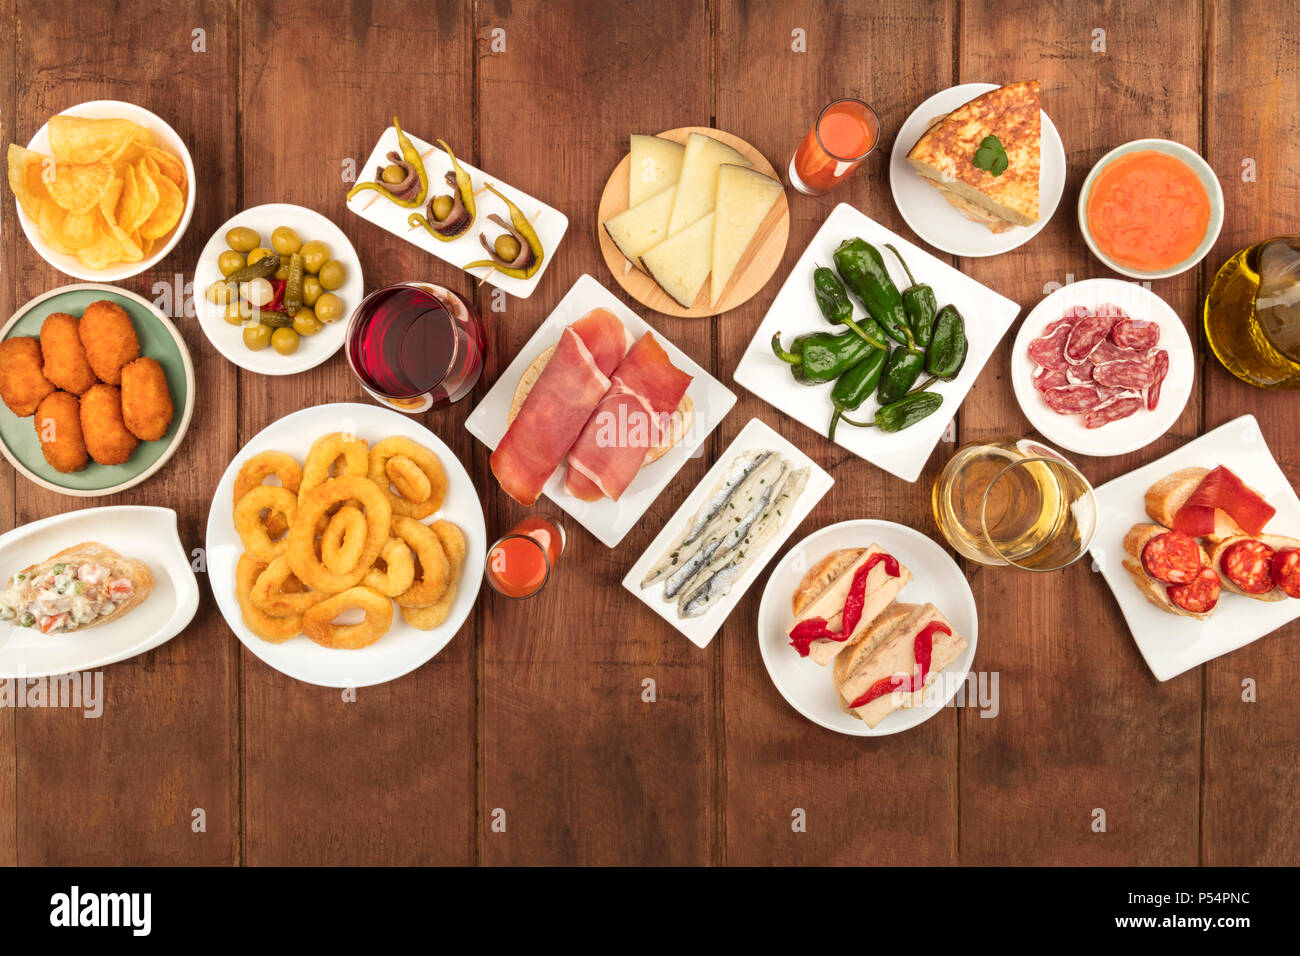 Overhead photo of many different Spanish tapas foods, shot from above on a dark rustic background with a place for text. Jamon, gazpacho, cheese, etc - Stock Image